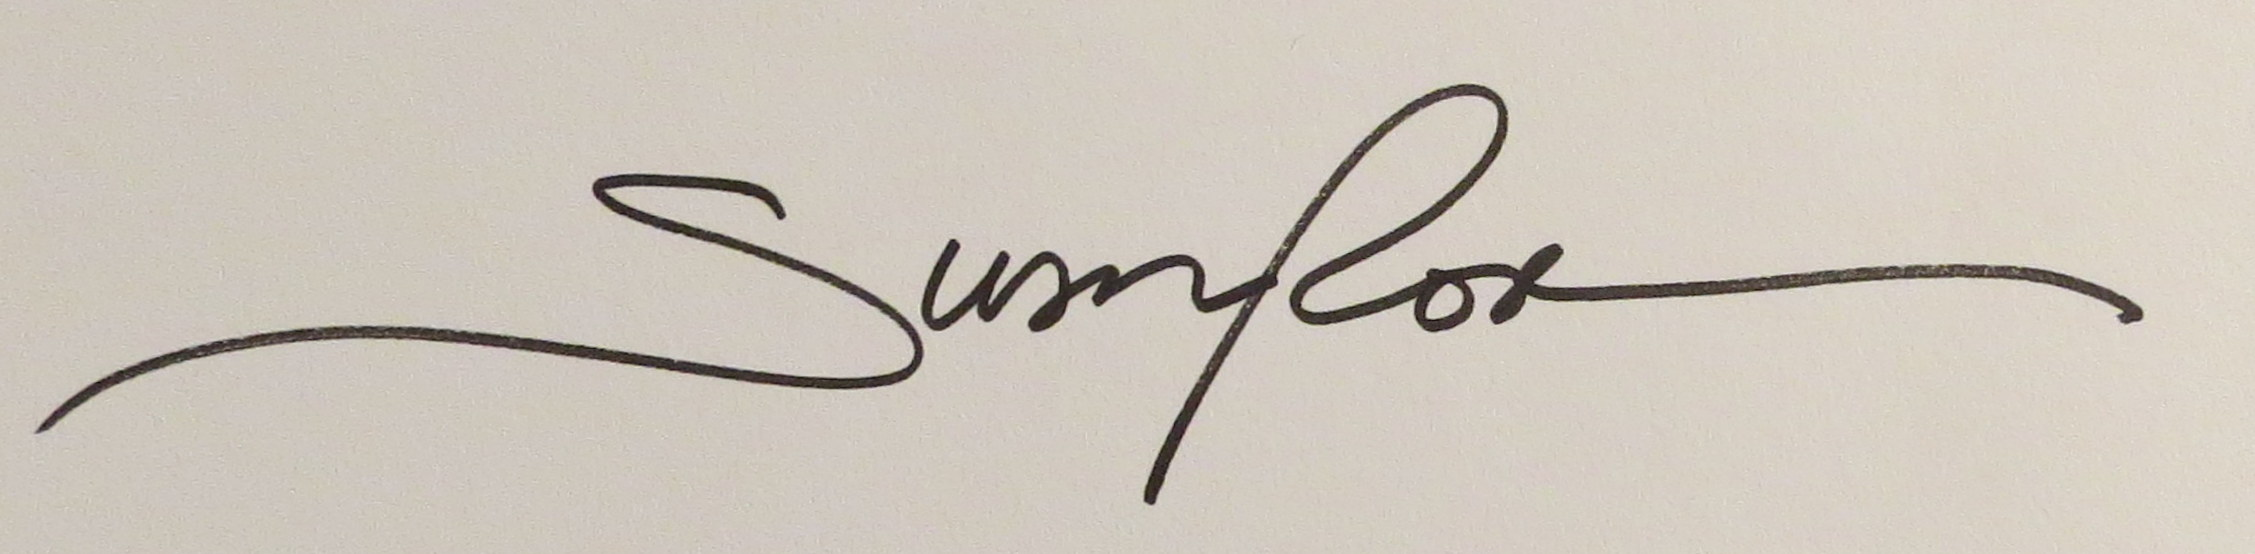 Susan Rose's Signature